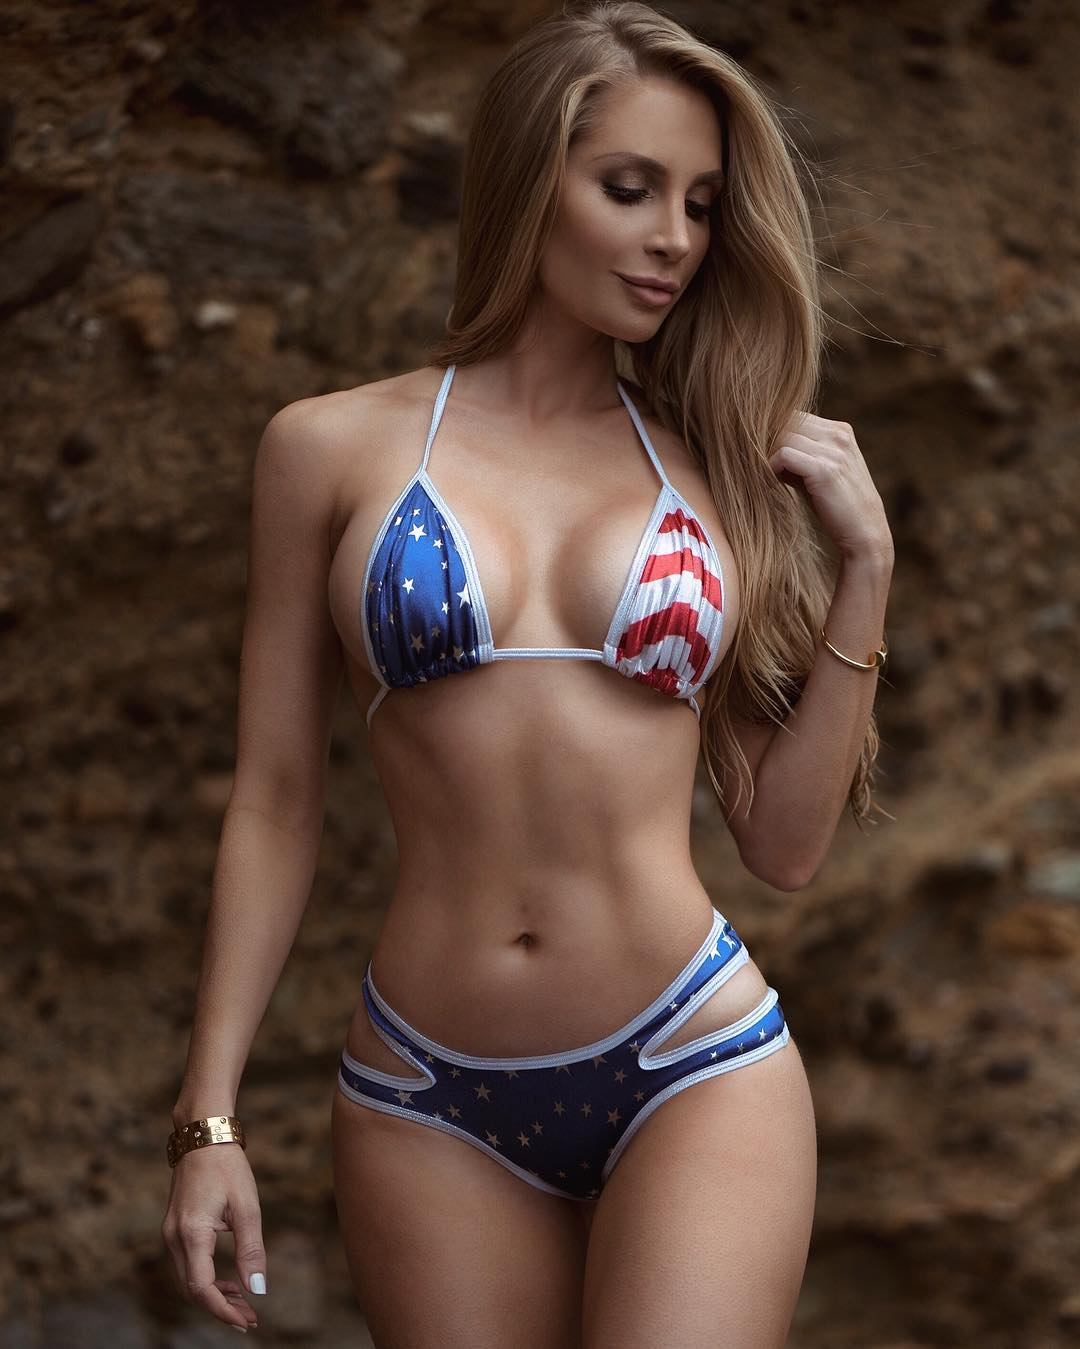 Amanda Elise Lee - Fitness Model and Instagram Star